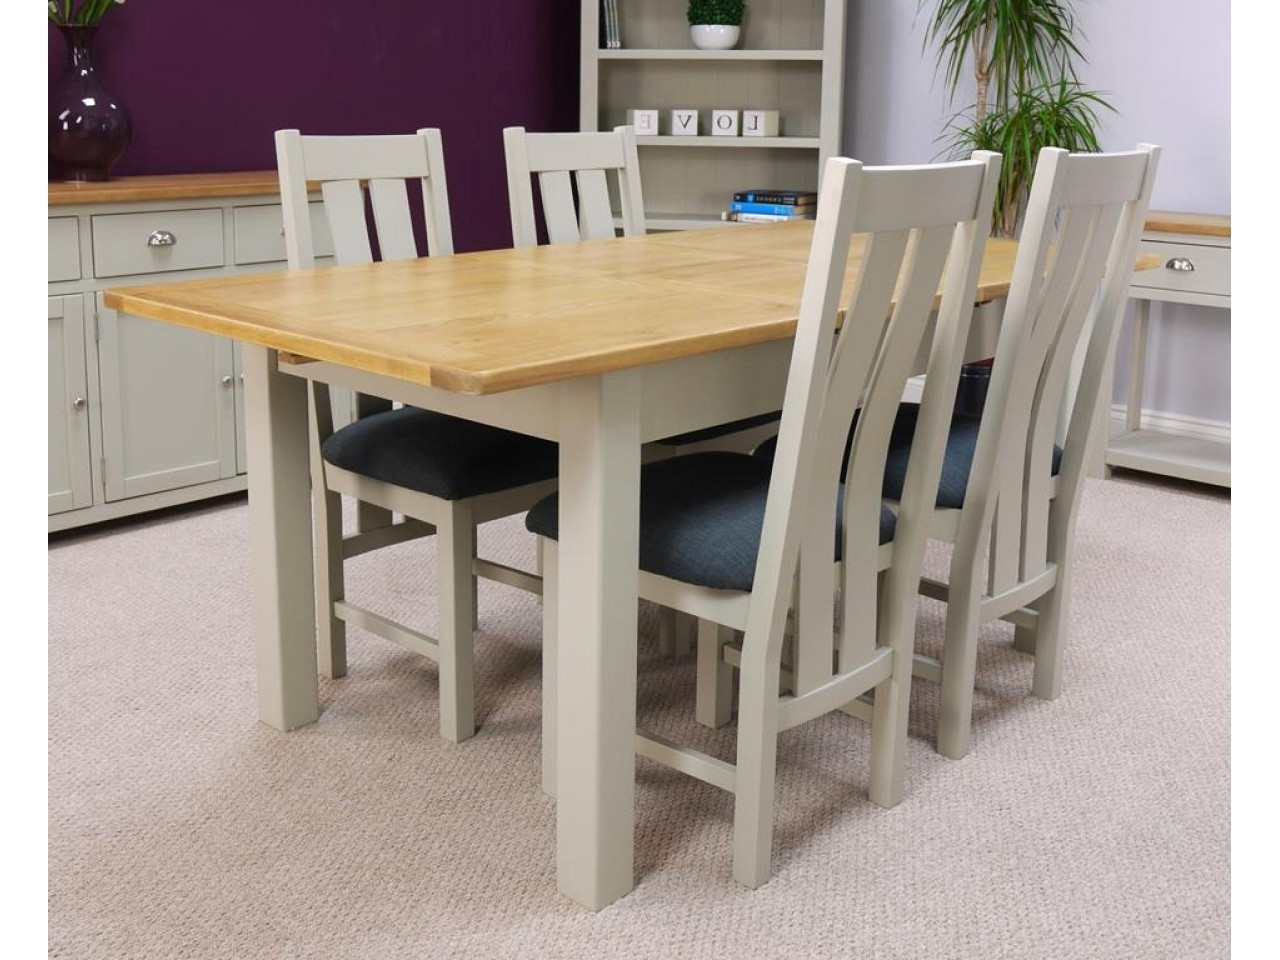 Extendable Oak Dining Tables And Chairs Throughout 2017 Oak Living Room Furniture Uk With Two Tone Grey Painted Extending (View 8 of 25)